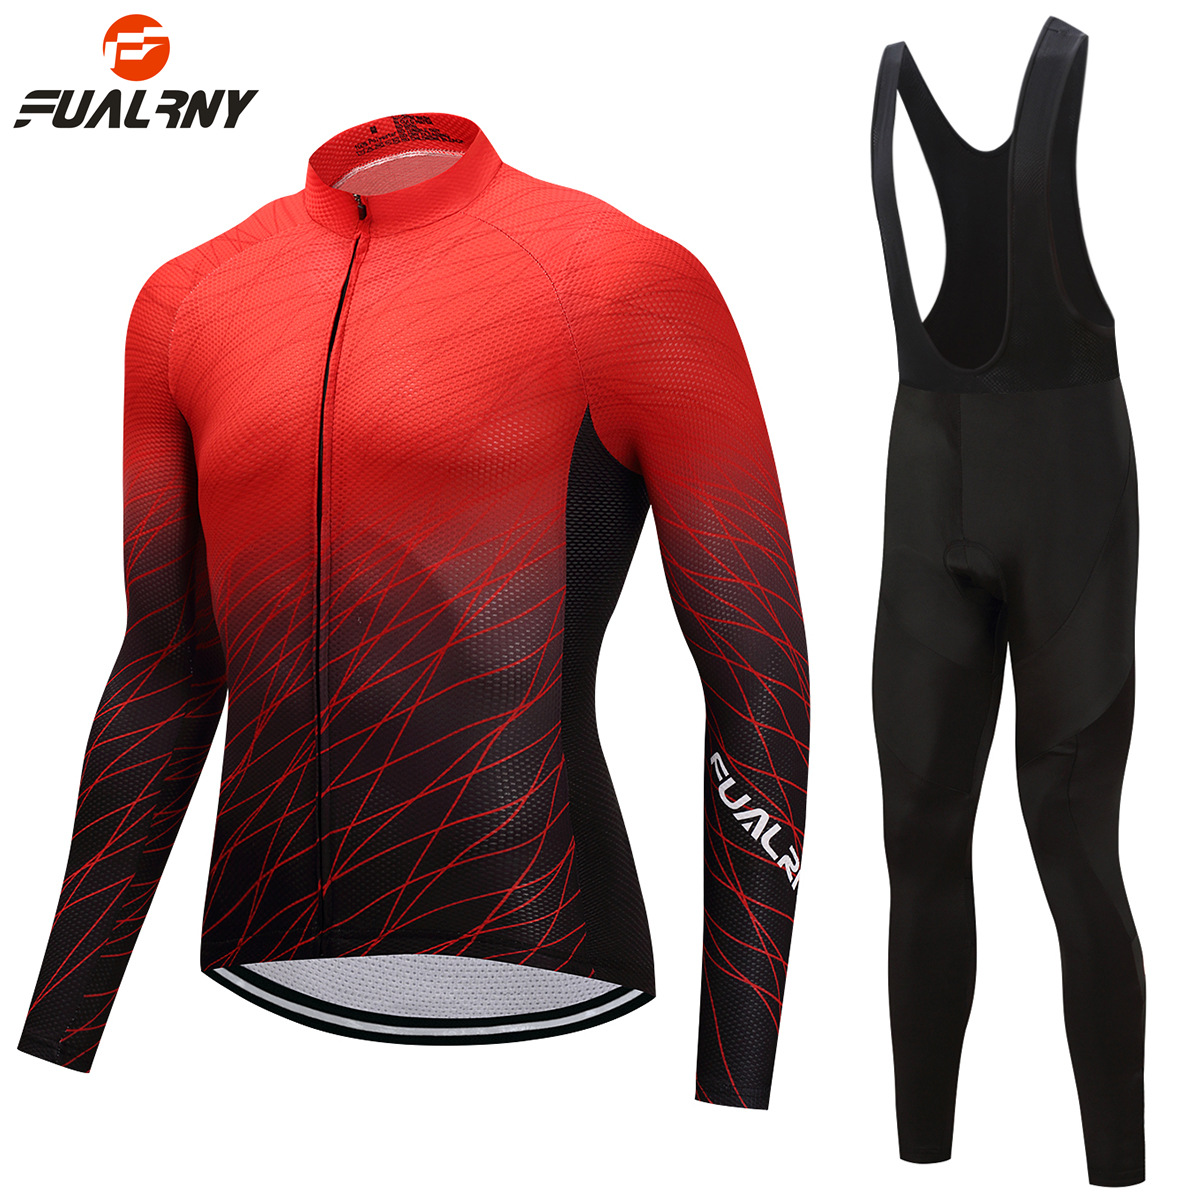 FUALRNY 2018 Pro Breathable/Thermal Fleece Men Women Long Sleeve Cycling Jersey Set Cycling Bike Bicycle MTB Jersey Bib Pants paladinsport men s skull pattern long sleeved cycling jersey pants set black red size xl